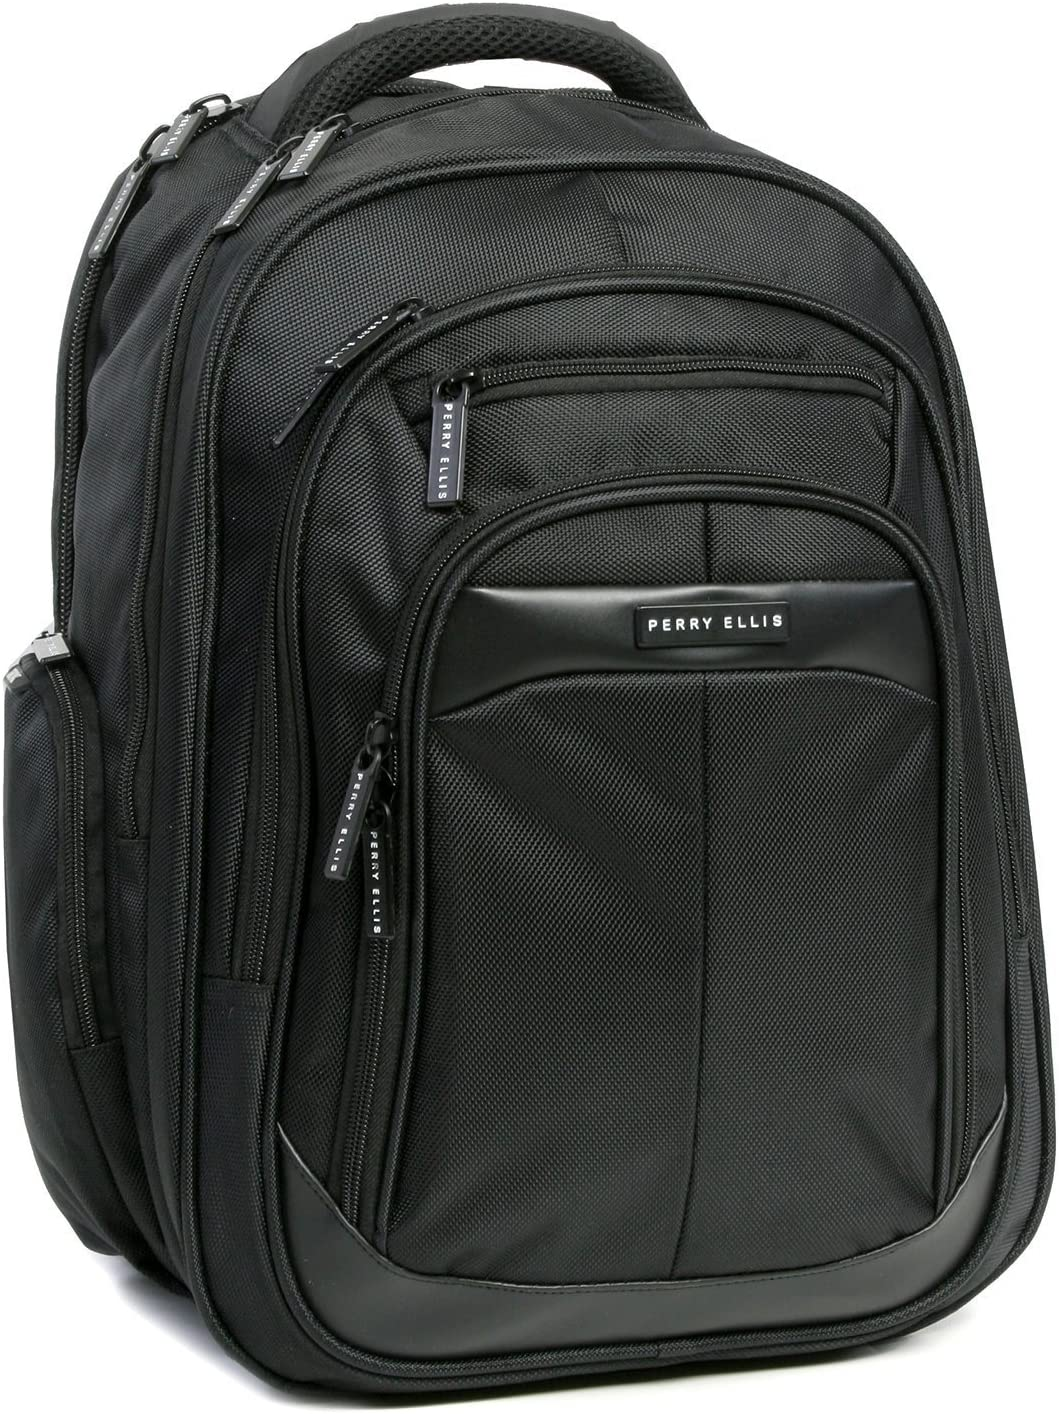 Perry Ellis M140 Business Laptop Backpack, Black, One Size